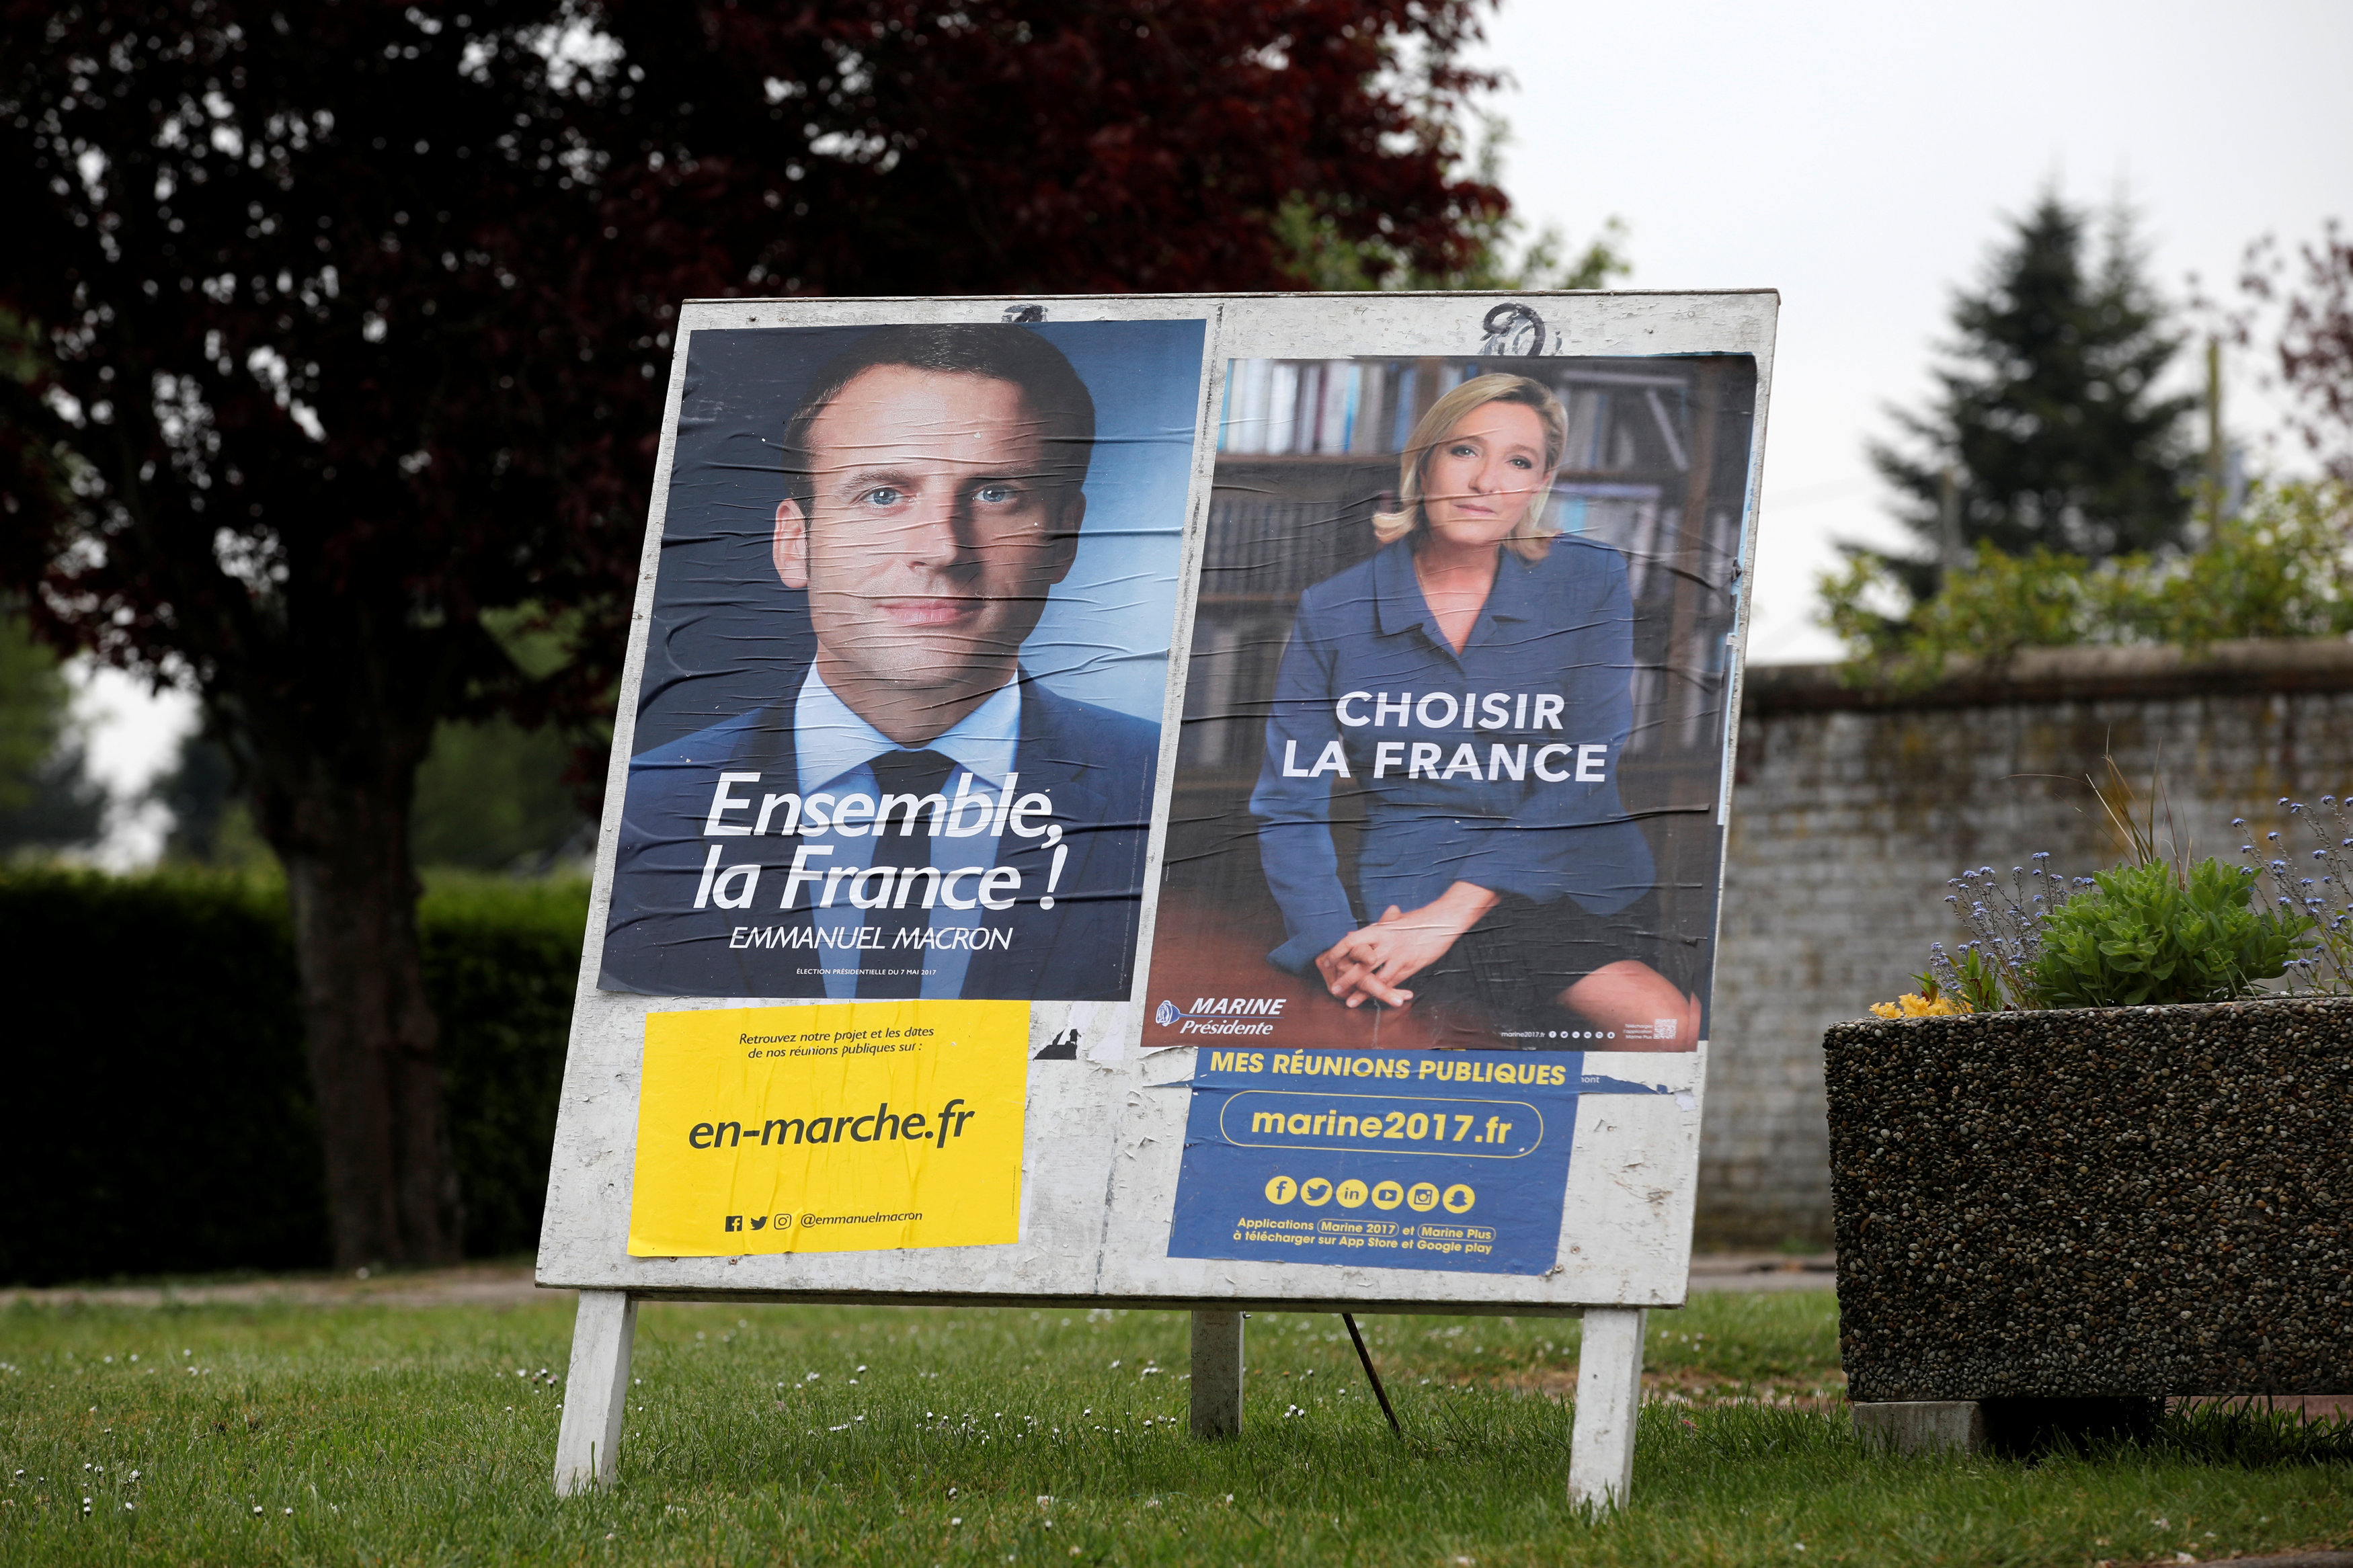 2017 05 05T175056Z 1968420489 RC11FADF6530 RTRMADP 3 FRANCE ELECTION